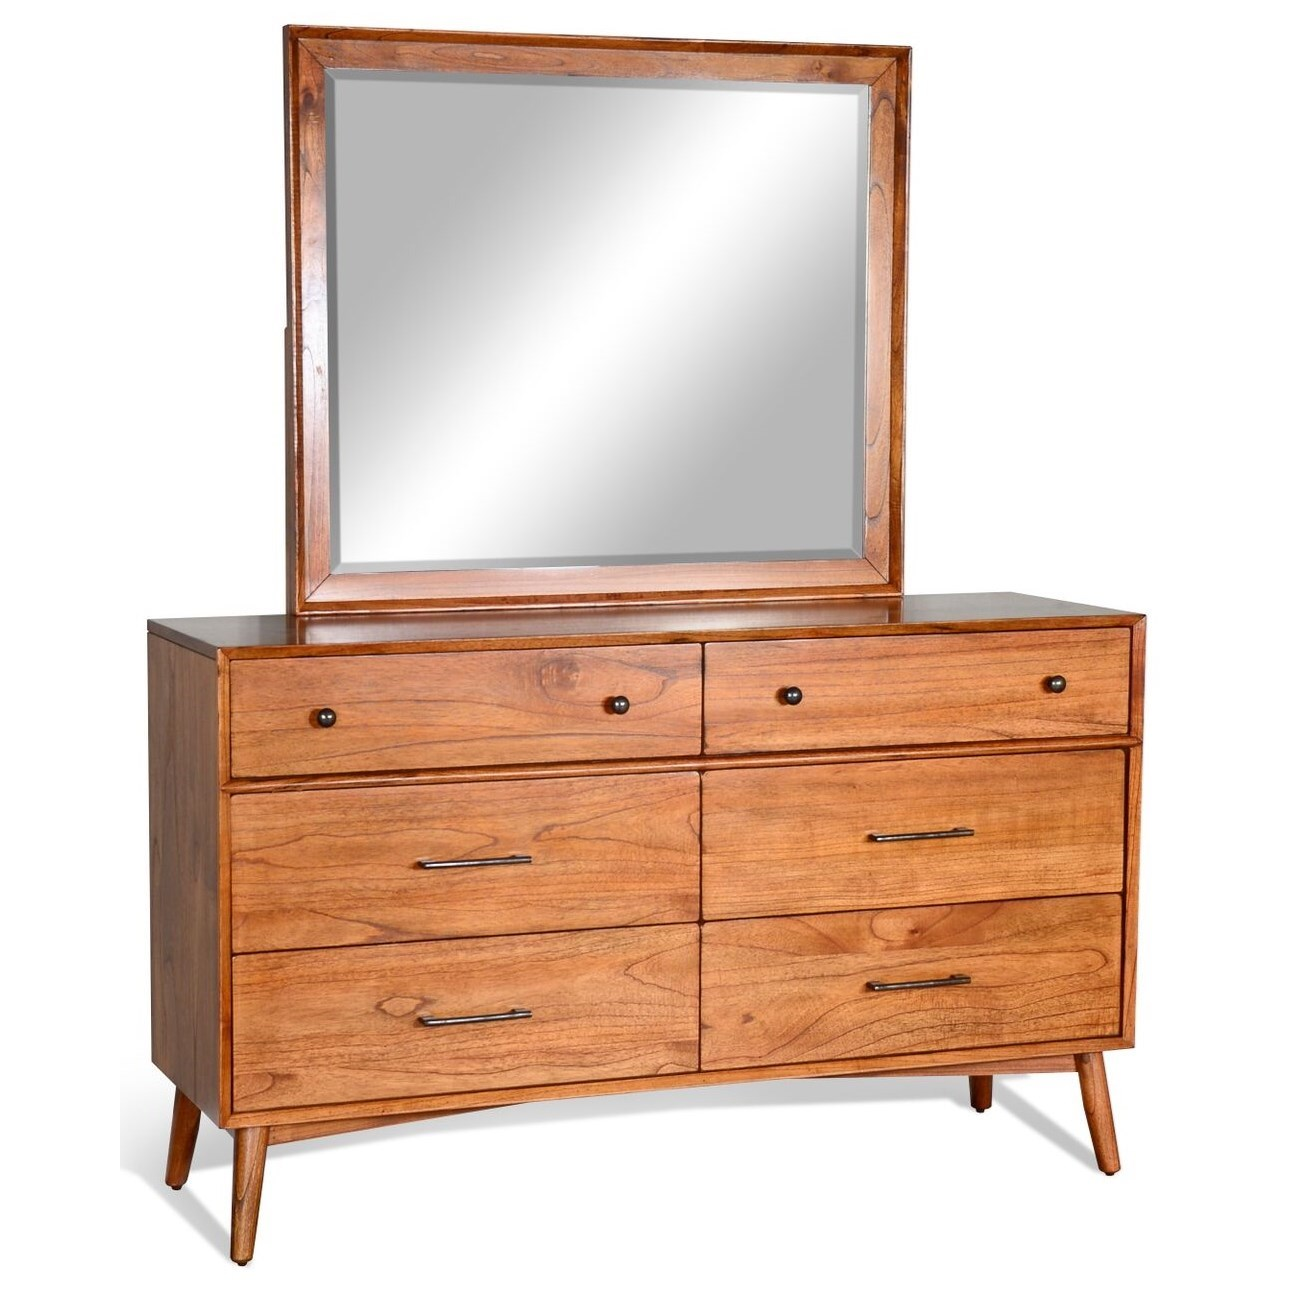 American Modern Dresser and Mirror Combination by Sunny Designs at Sparks HomeStore